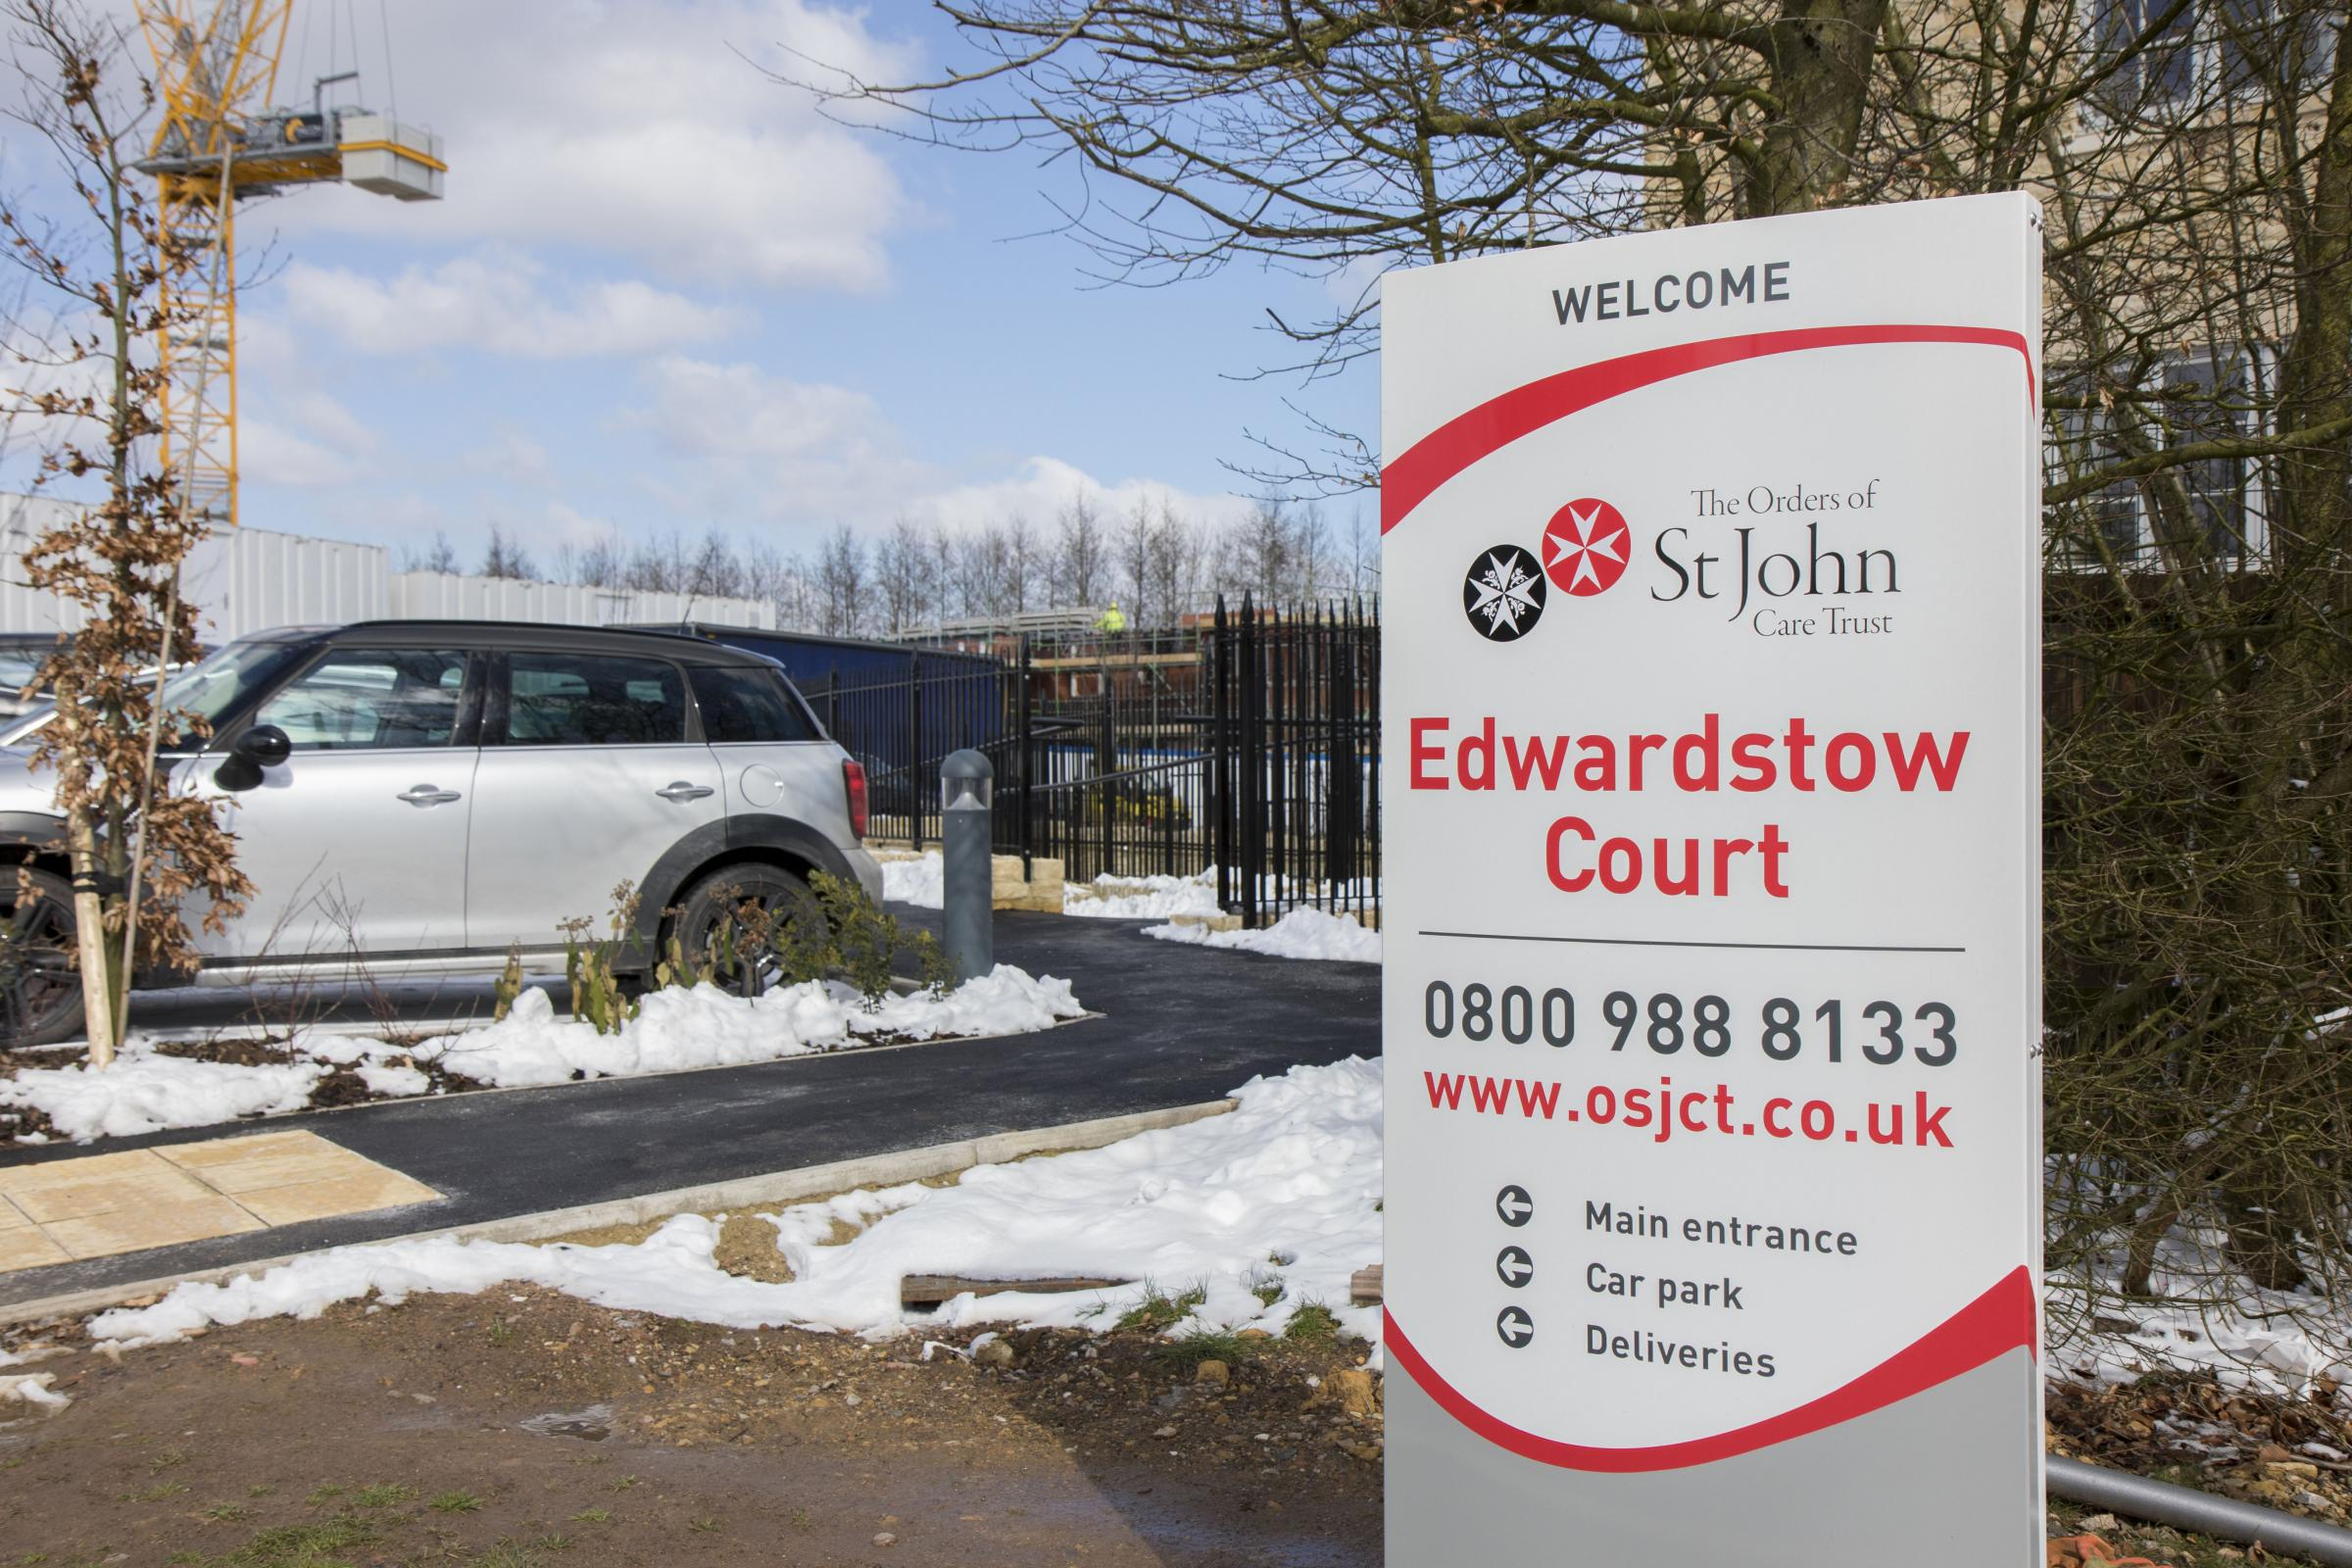 NEW: Edwardstow Court is due to open soon. Photo: Paul Jackson